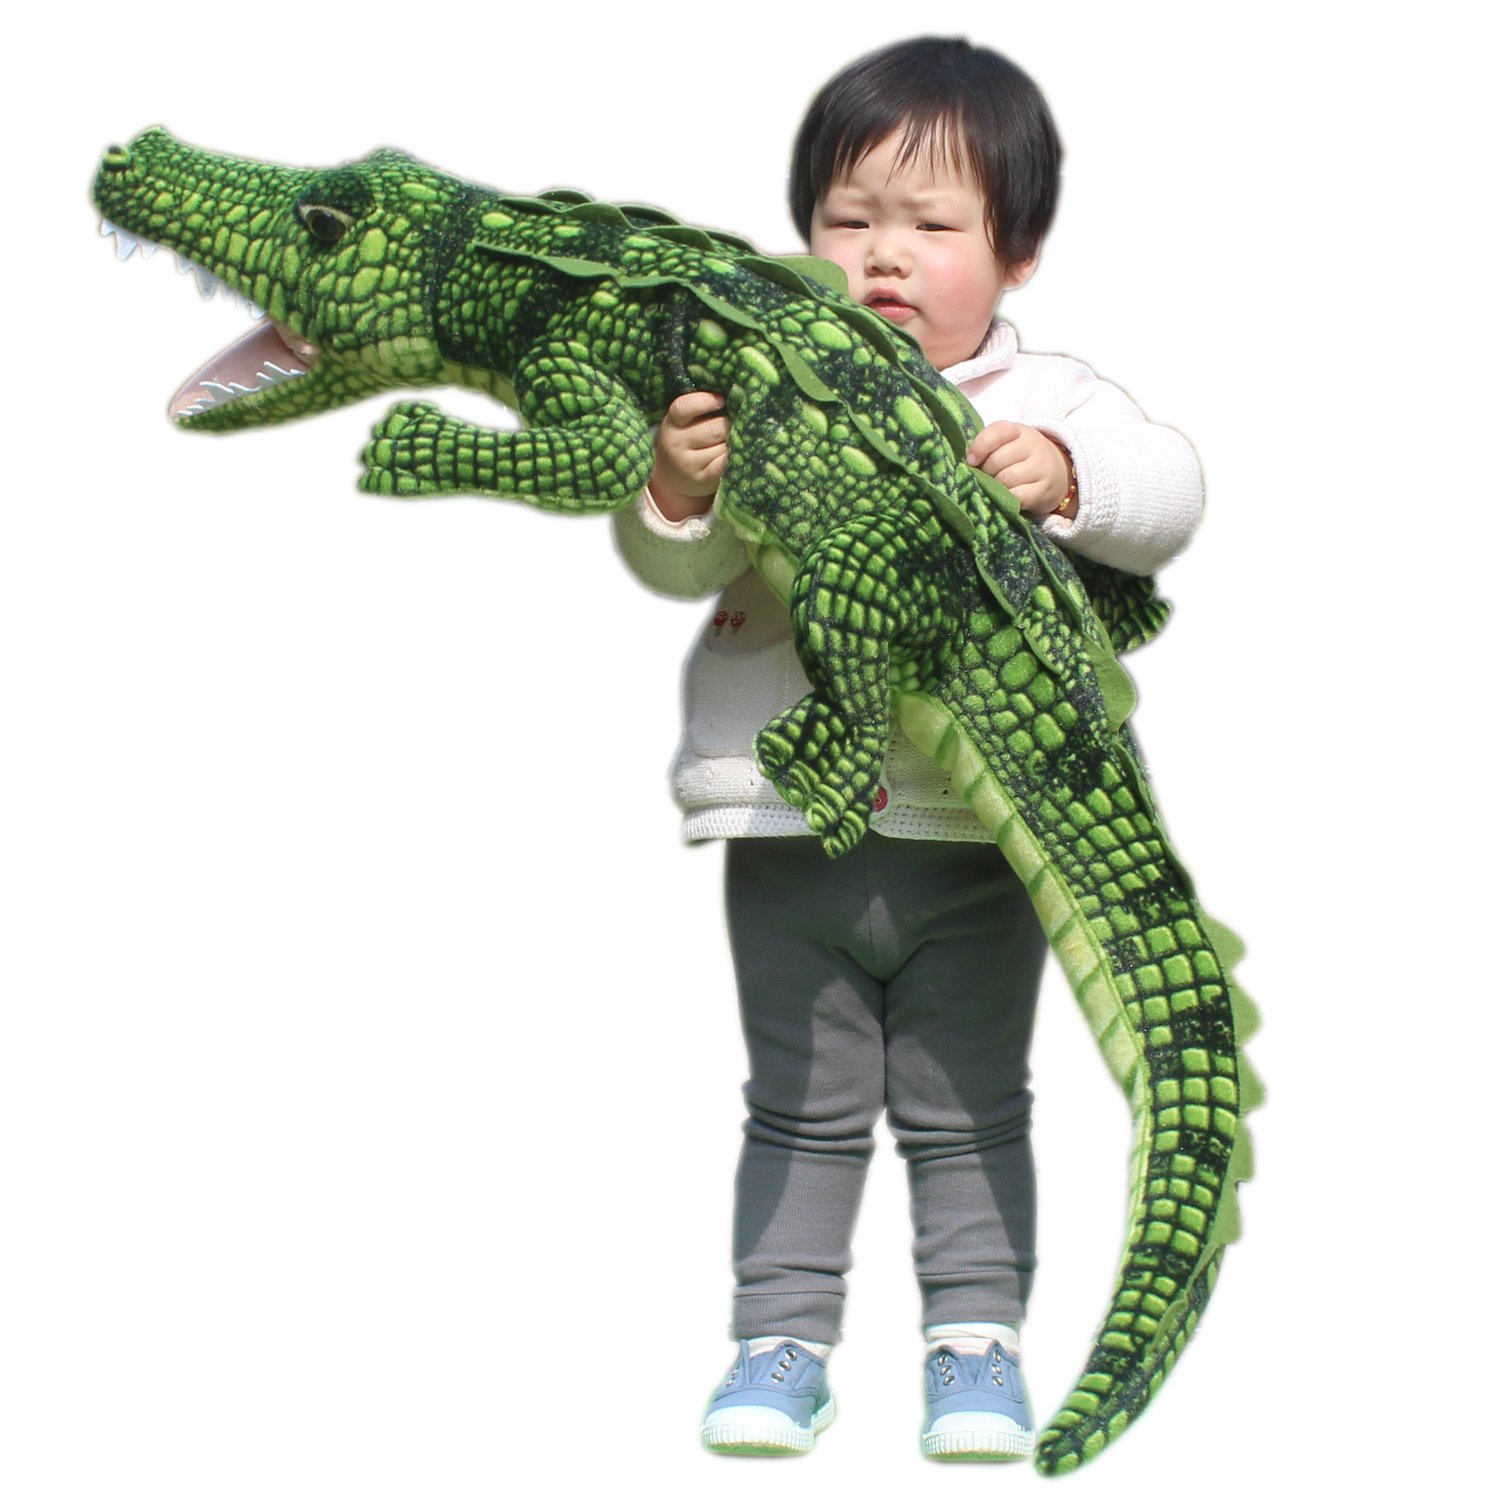 JESONN Realistic Soft Plush Animals Stuffed Toys Crocodile for Kids' Pillow and Gifts,43.3 Inches or 110CM,1PC by JESONN